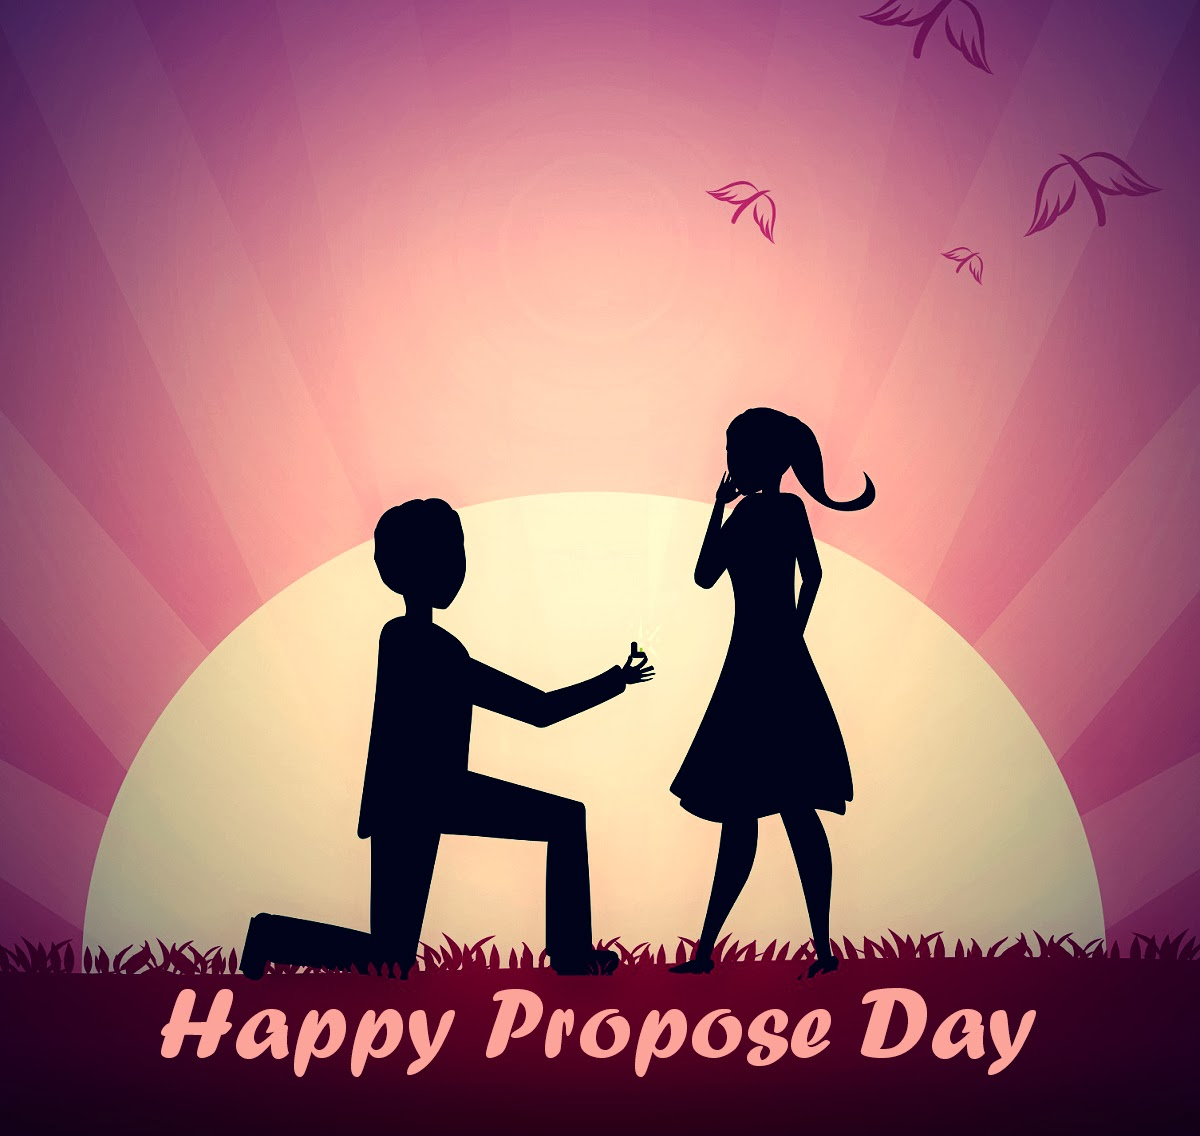 propose day wishes quotes